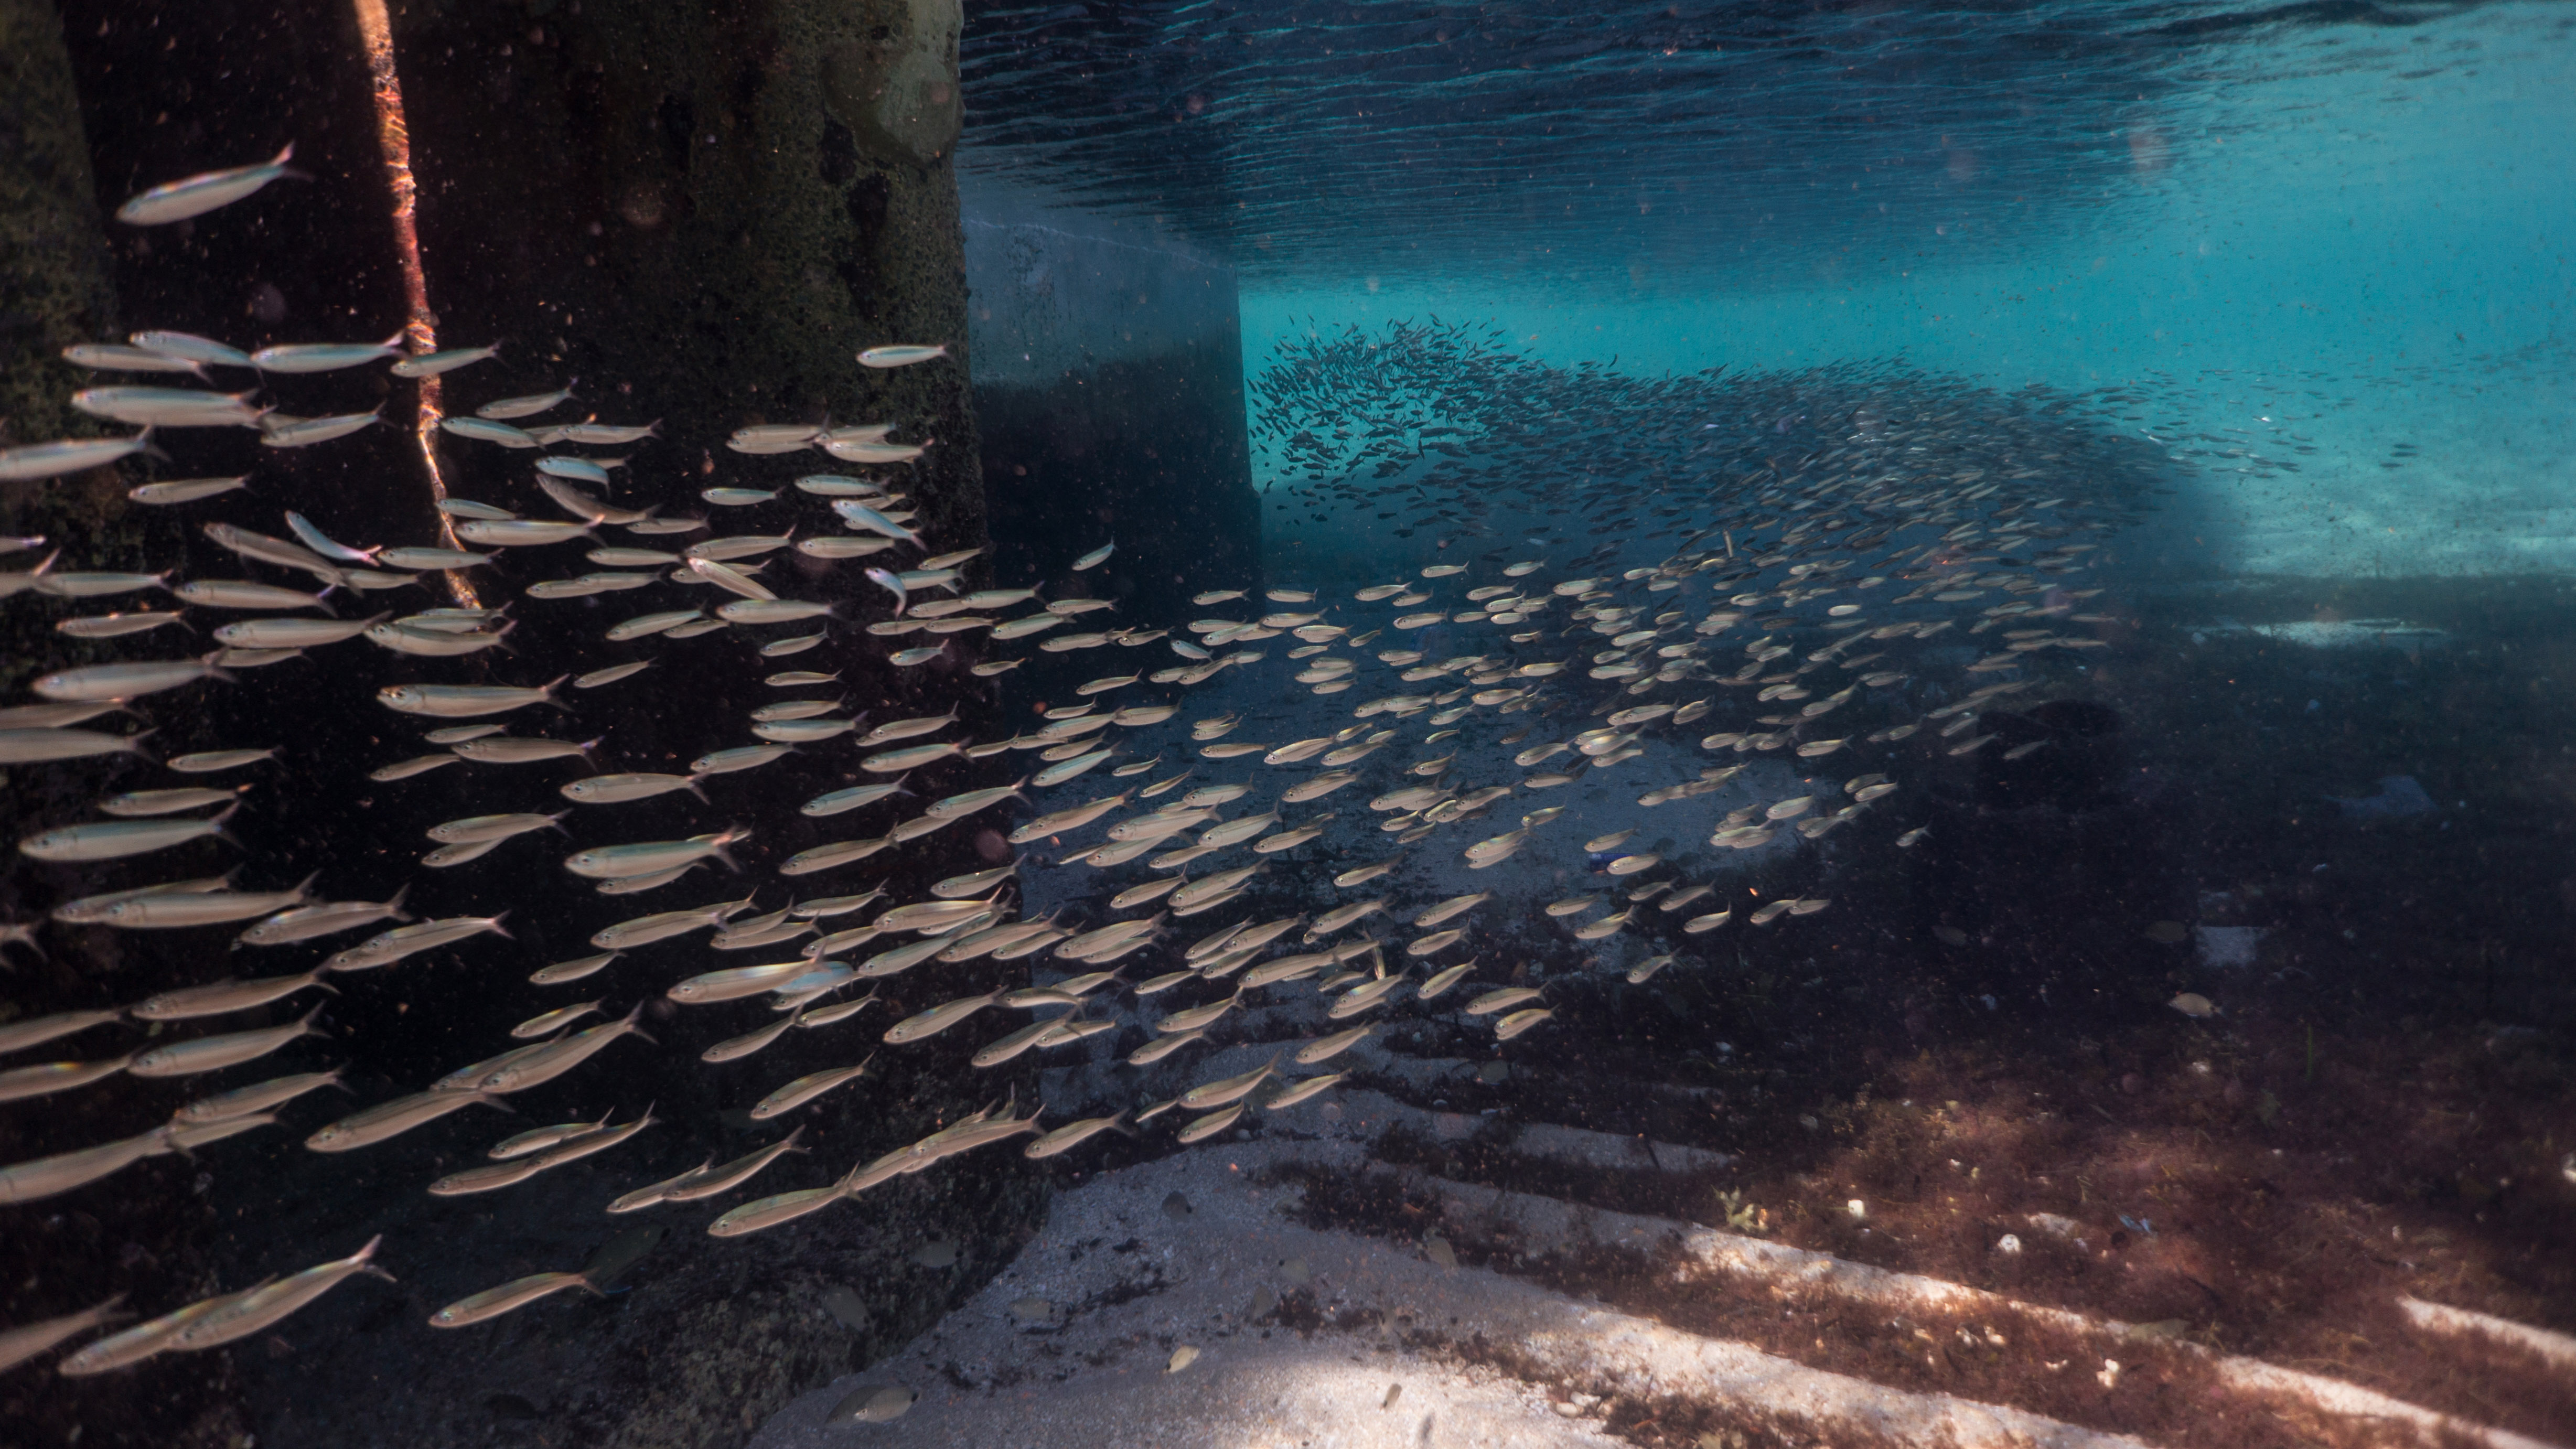 A school of forage fish, including cigar minnows, darts under the shadow of a dock, possibly to avoid detection by predators. In addition to being essential food for marine life, forage fish also are in high demand as feed for fish farms and livestock and for use in consumer products such as cosmetics, pet food, and fertilizers.